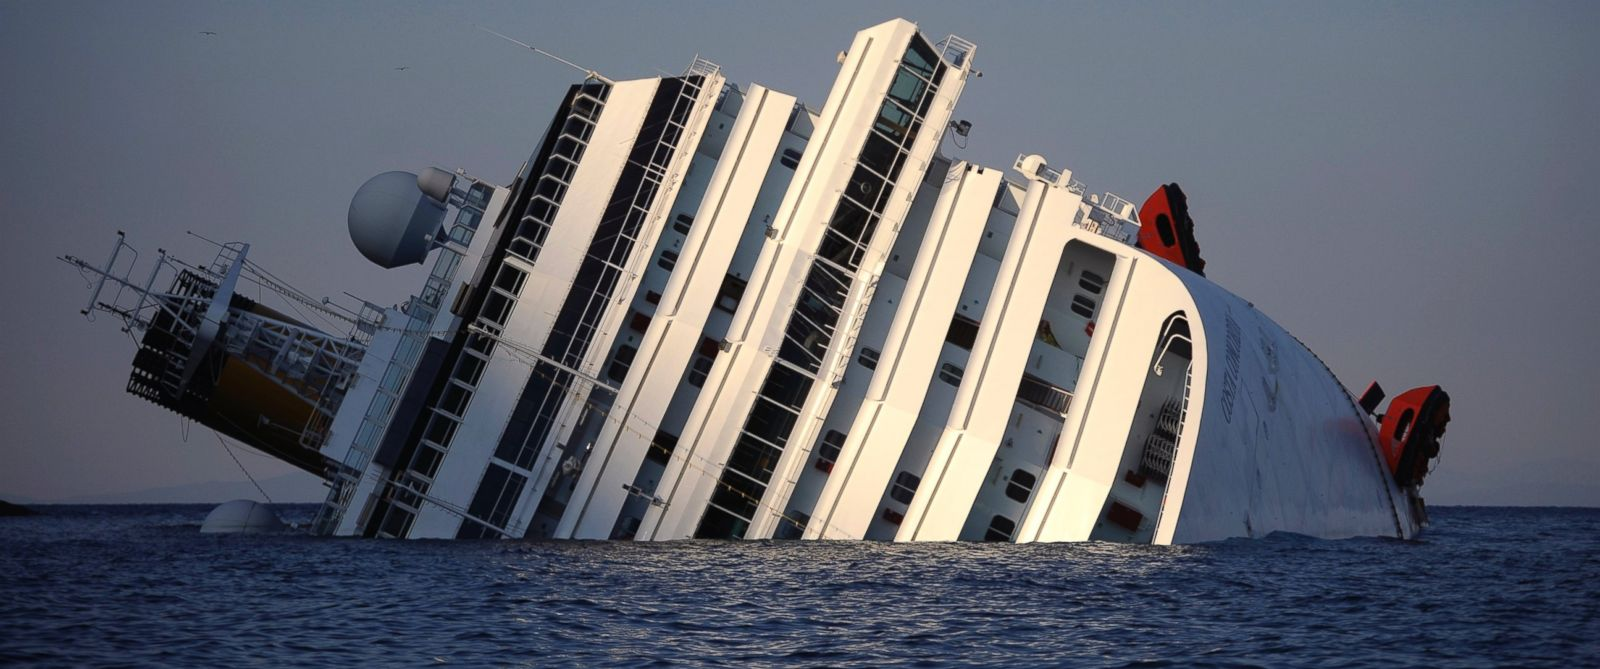 PHOTO: A view of the Costa Concordia after the cruise ship ran aground and keeled over off the Isola del Giglio, Jan. 14, 2012.